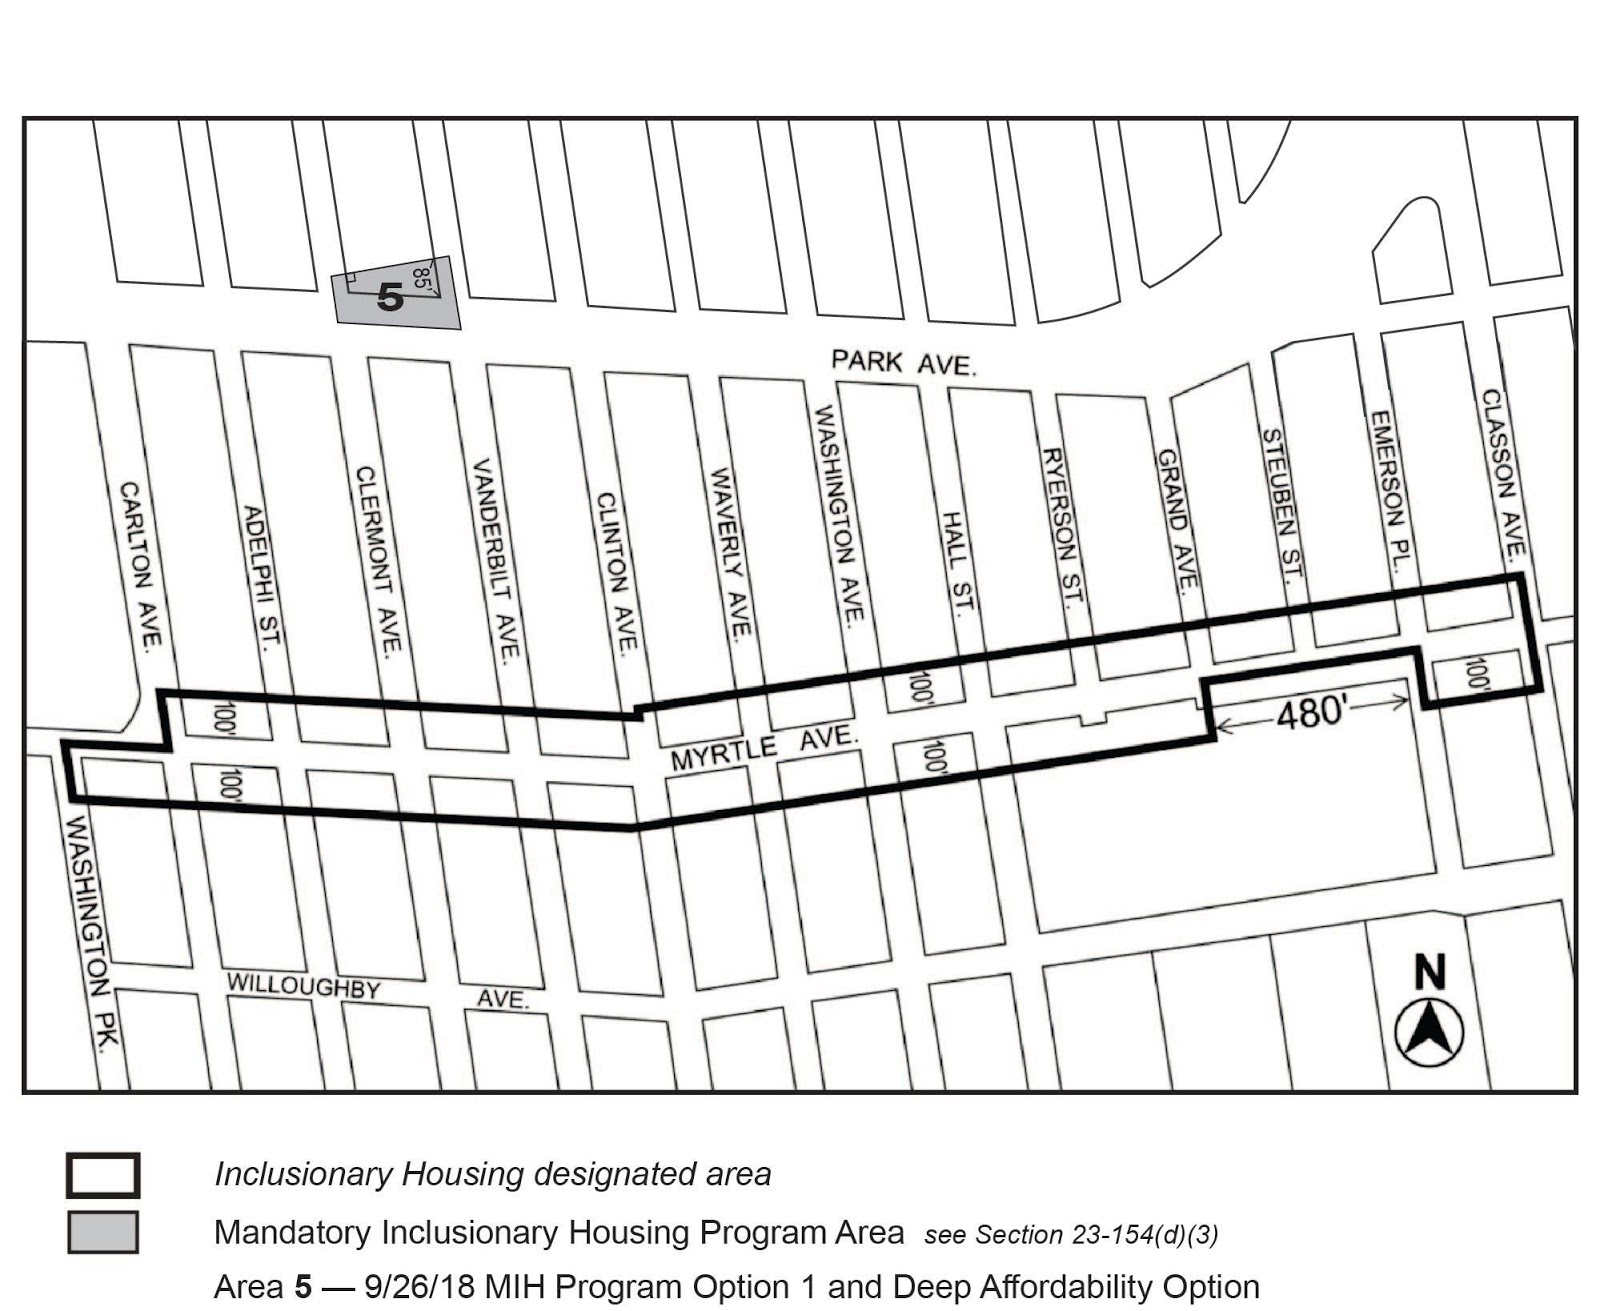 Zoning Resolutions F-Inclusionary Housing Designated Areas and Mandatory Inclusionary Housing Areas_2.40